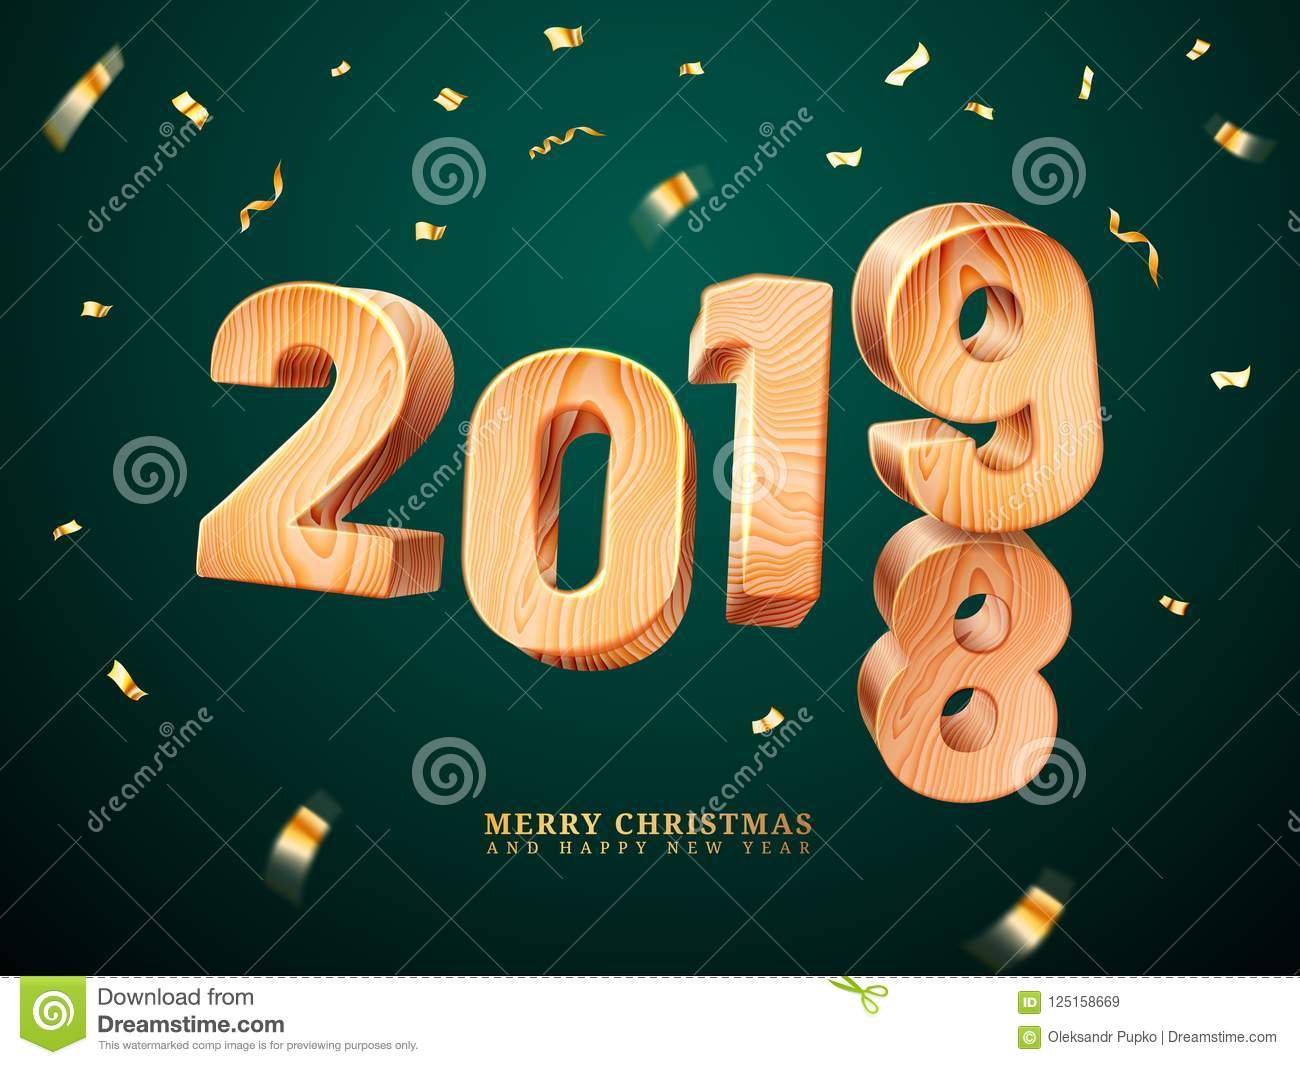 wooden 2019 for merry christmas with falling confetti and happy new year greetings postcard for xmas eve or holiday gift family present